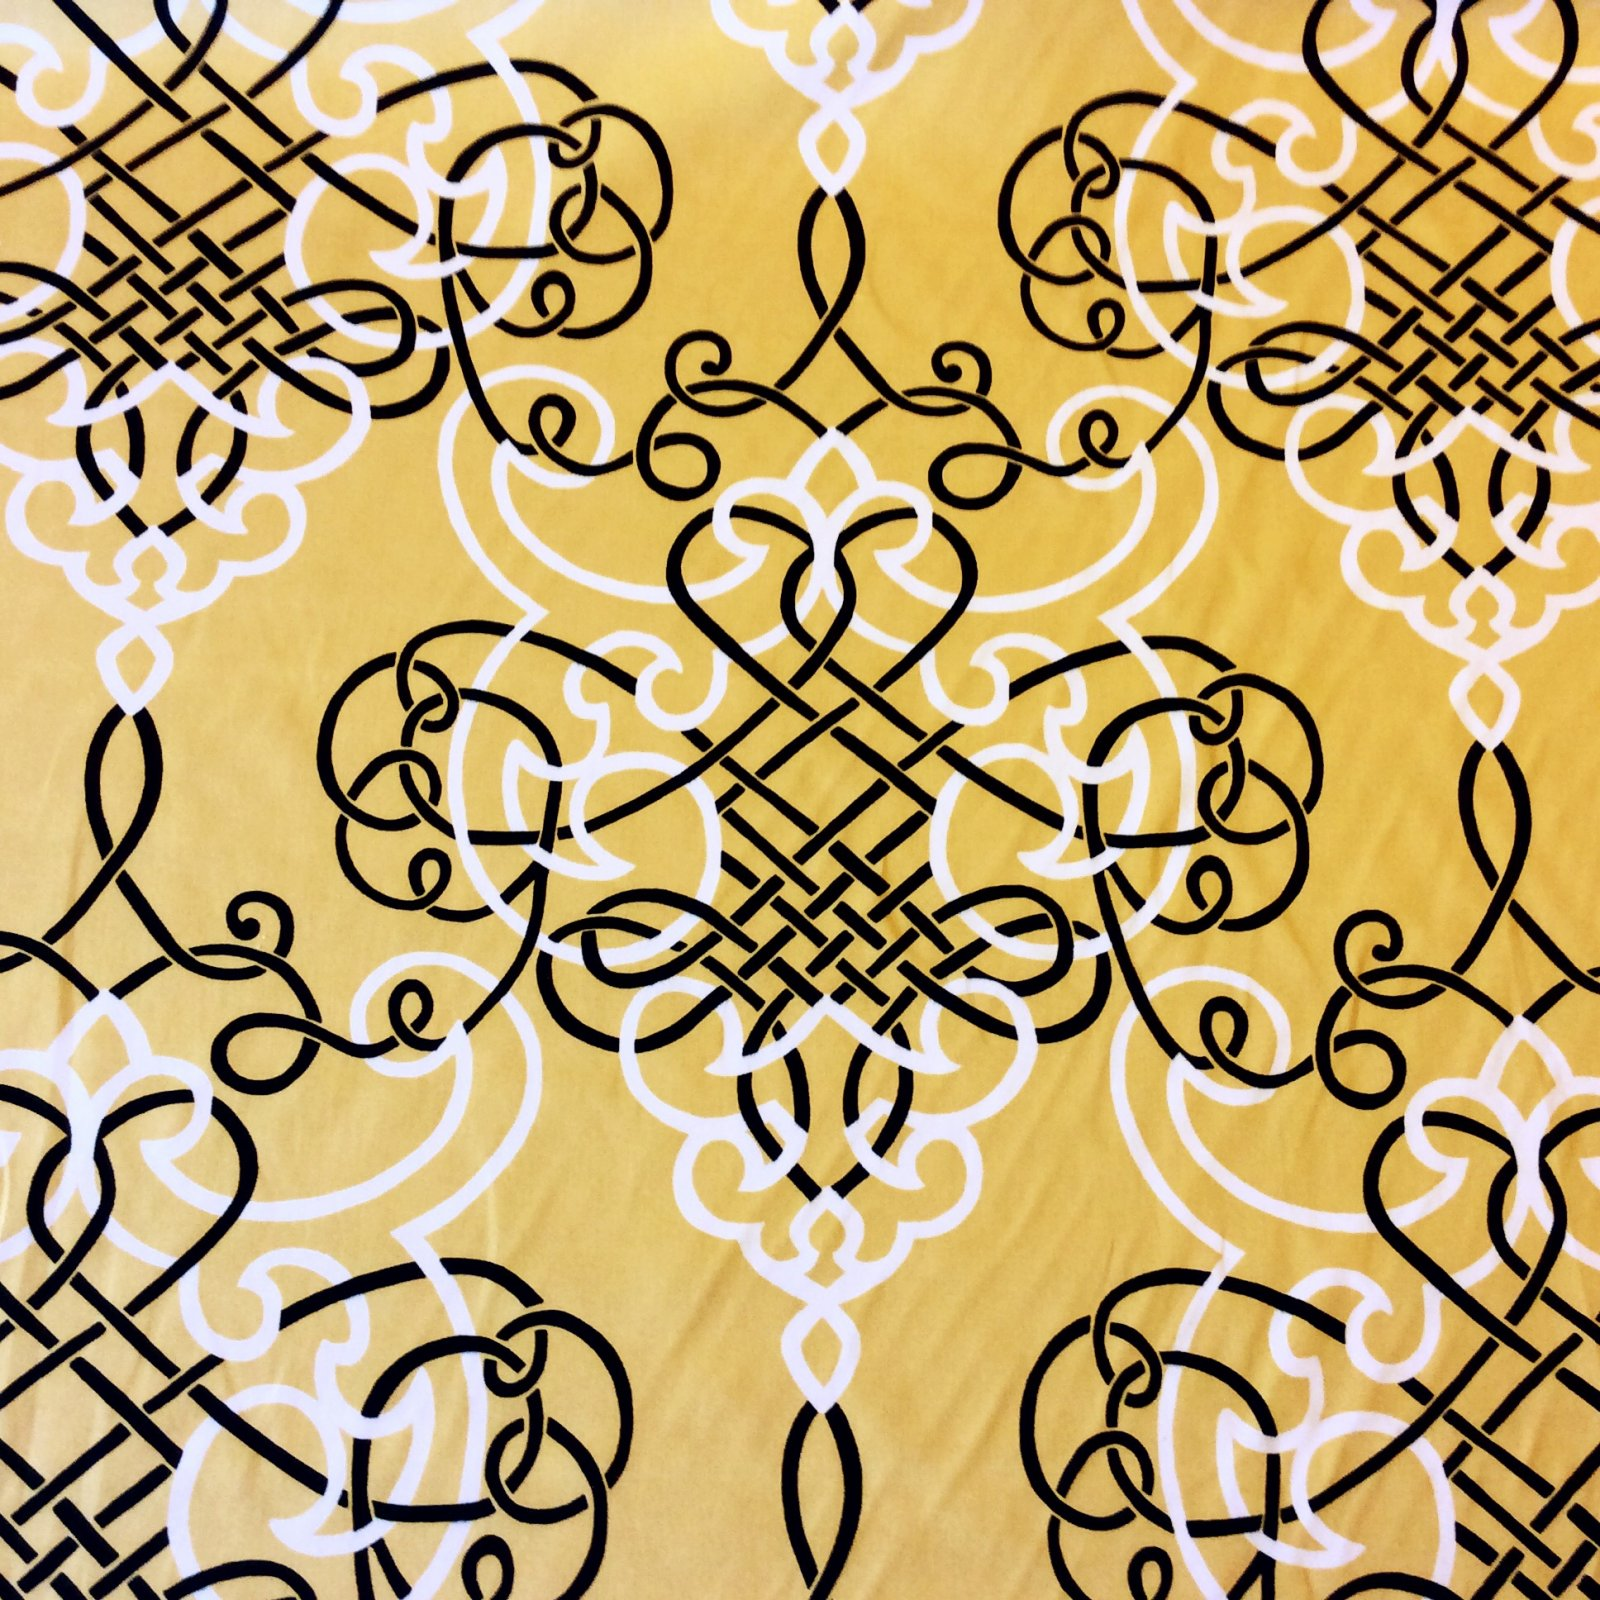 Geometric Scandinavian Modern Black and White Interlocking Designs Mustard background Della Pattern Heavy Weight Cotton Fabric Drapery Fabric DSO313